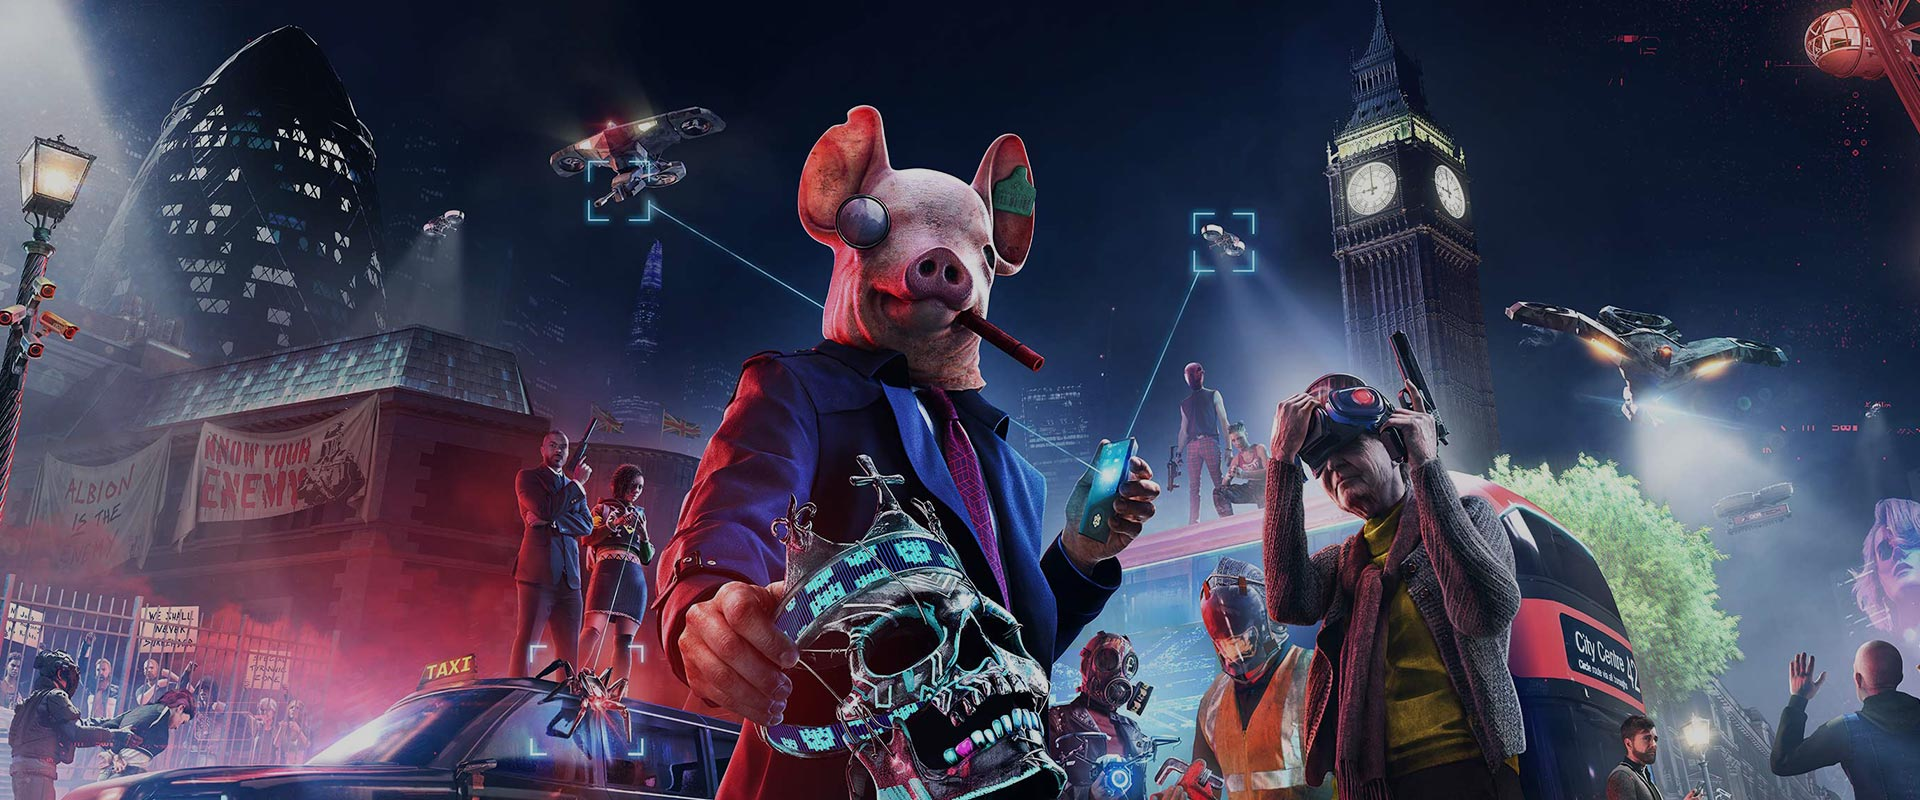 Watch Dogs Legion Site Promo Full Width Background